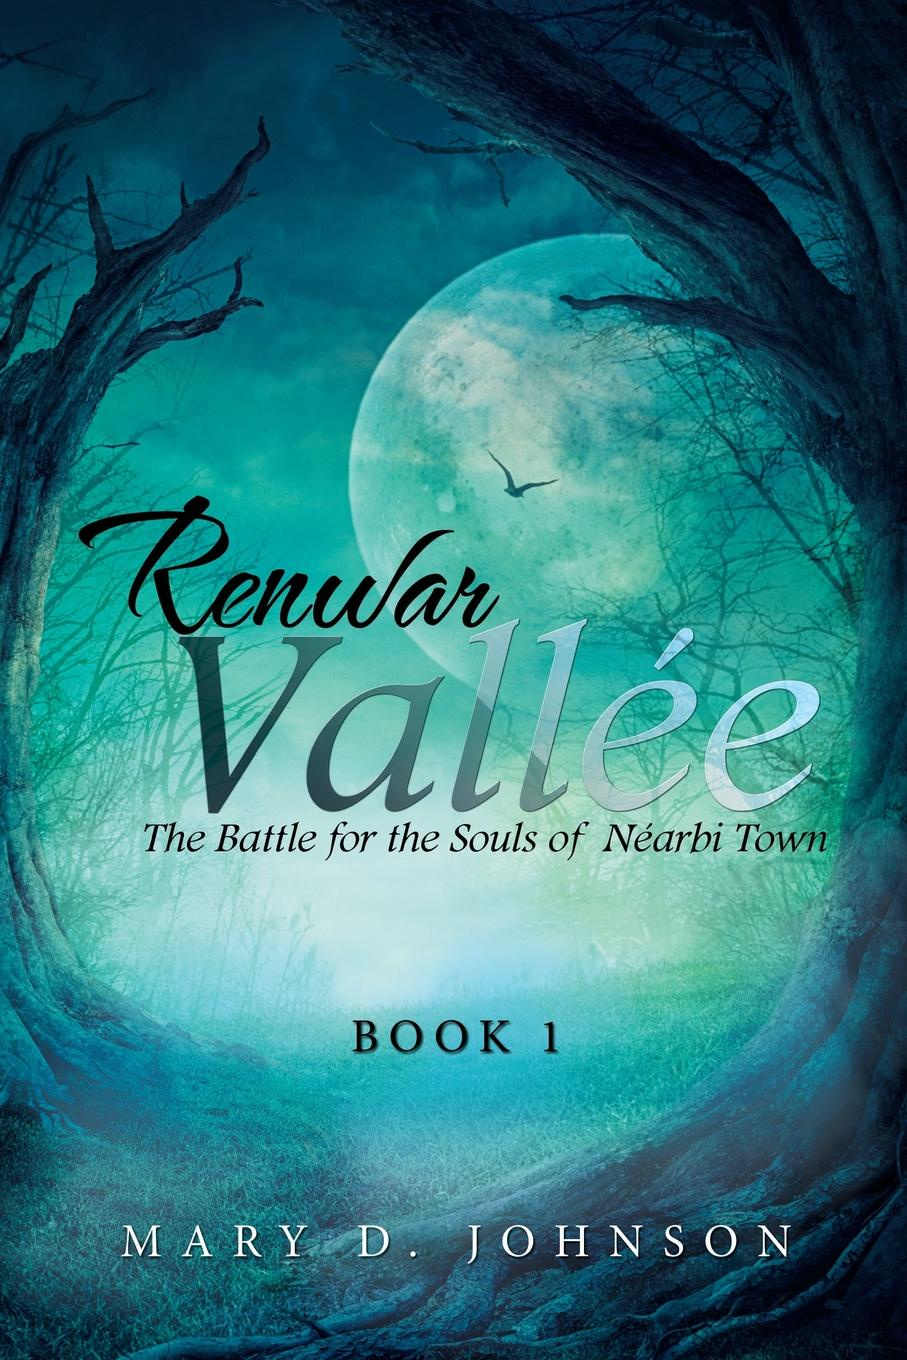 Mary D. Johnson Renwar Vallee. The Battle for the Souls of Nearbi Town john o cosgrave the academy for souls